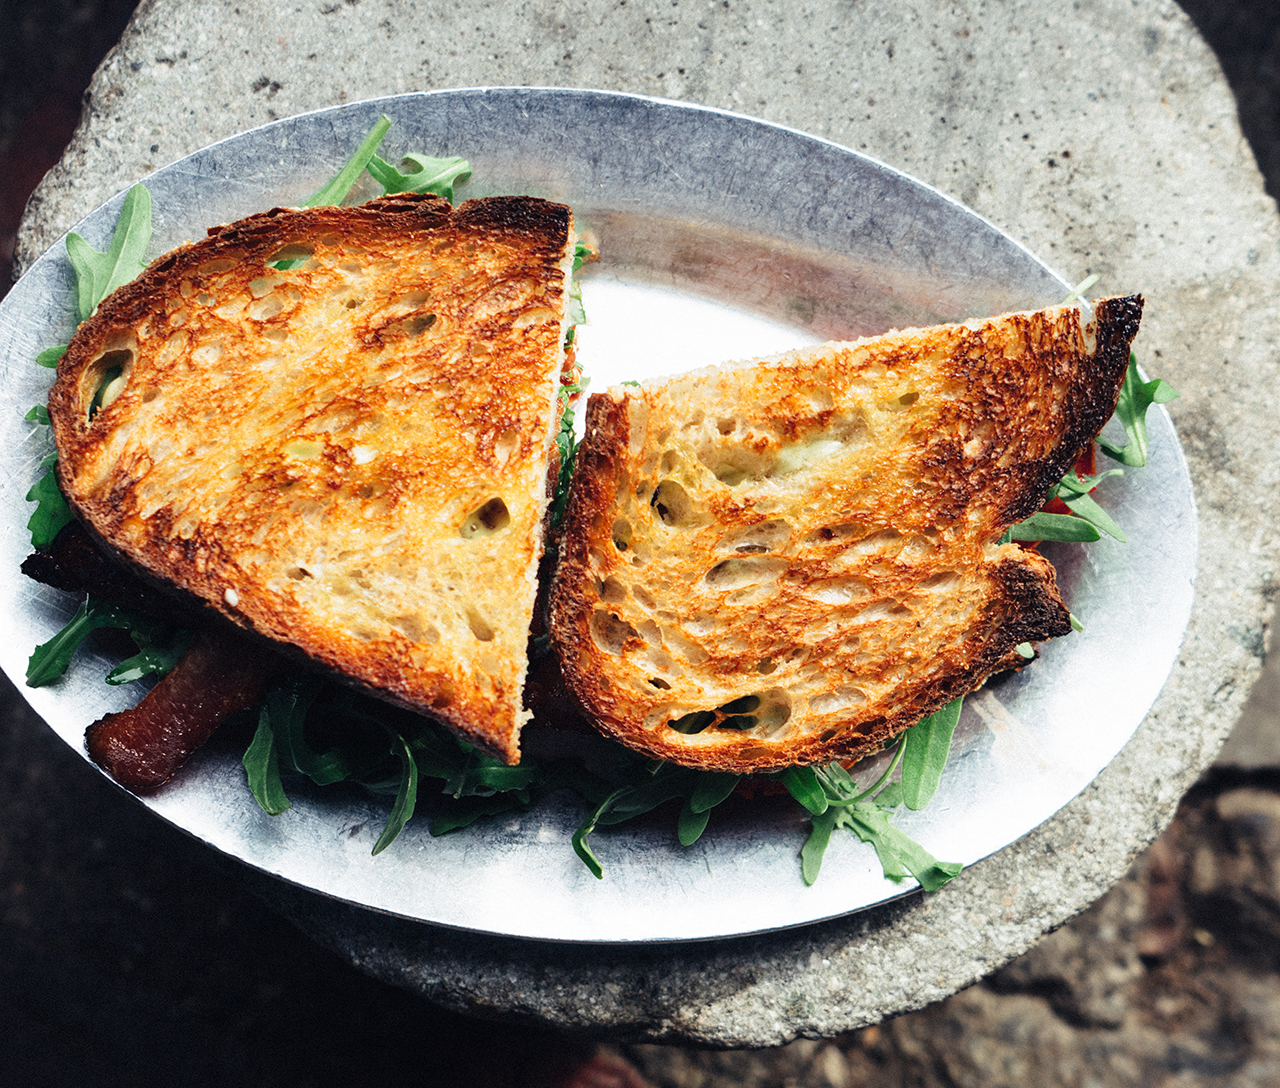 bread-food-plate-rucola.jpg